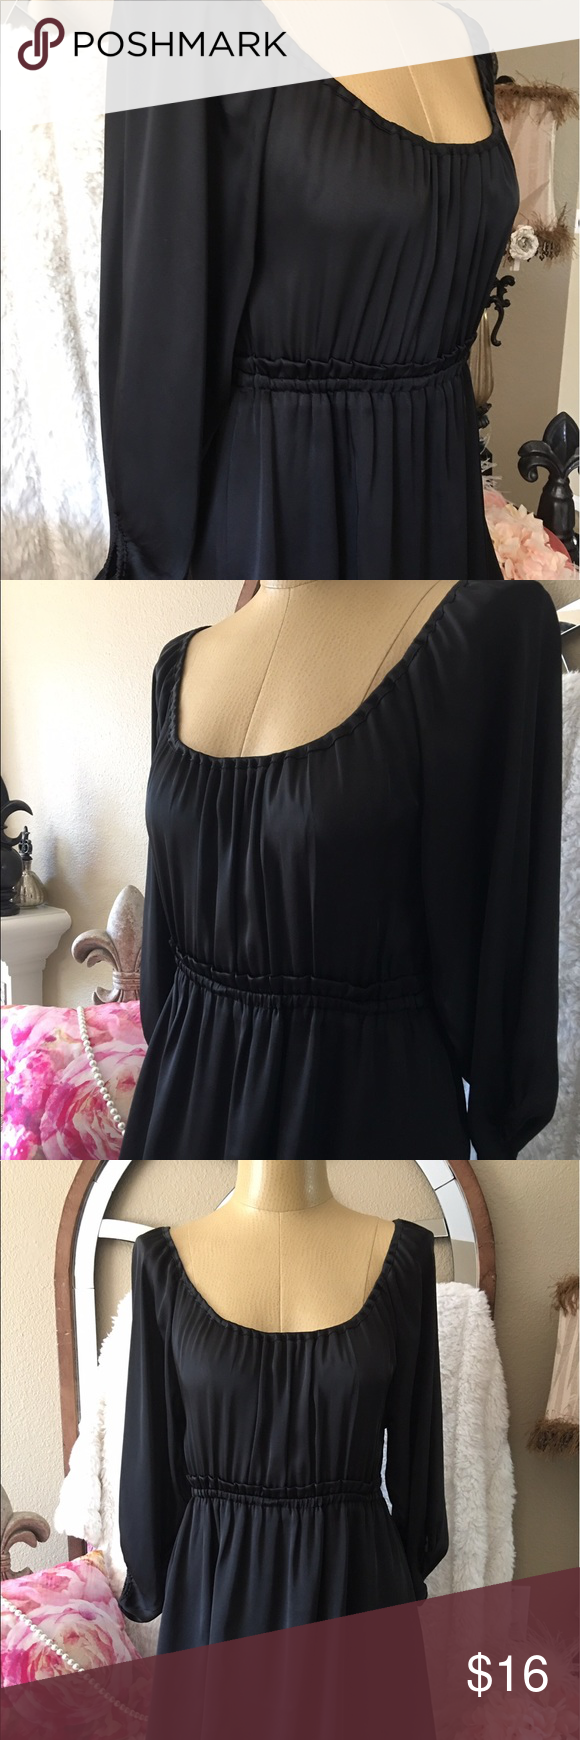 """H&M Silky black dress elastic waist size 6 Black dress with elastic waist for nice fit size 6. 17"""" arm pit to arm pit, 13"""" across the waist unstretched , 37 1/2"""" shoulder to hem. 💯polyester nice Silky fabric, bottom of dress is lined. H&M Dresses"""